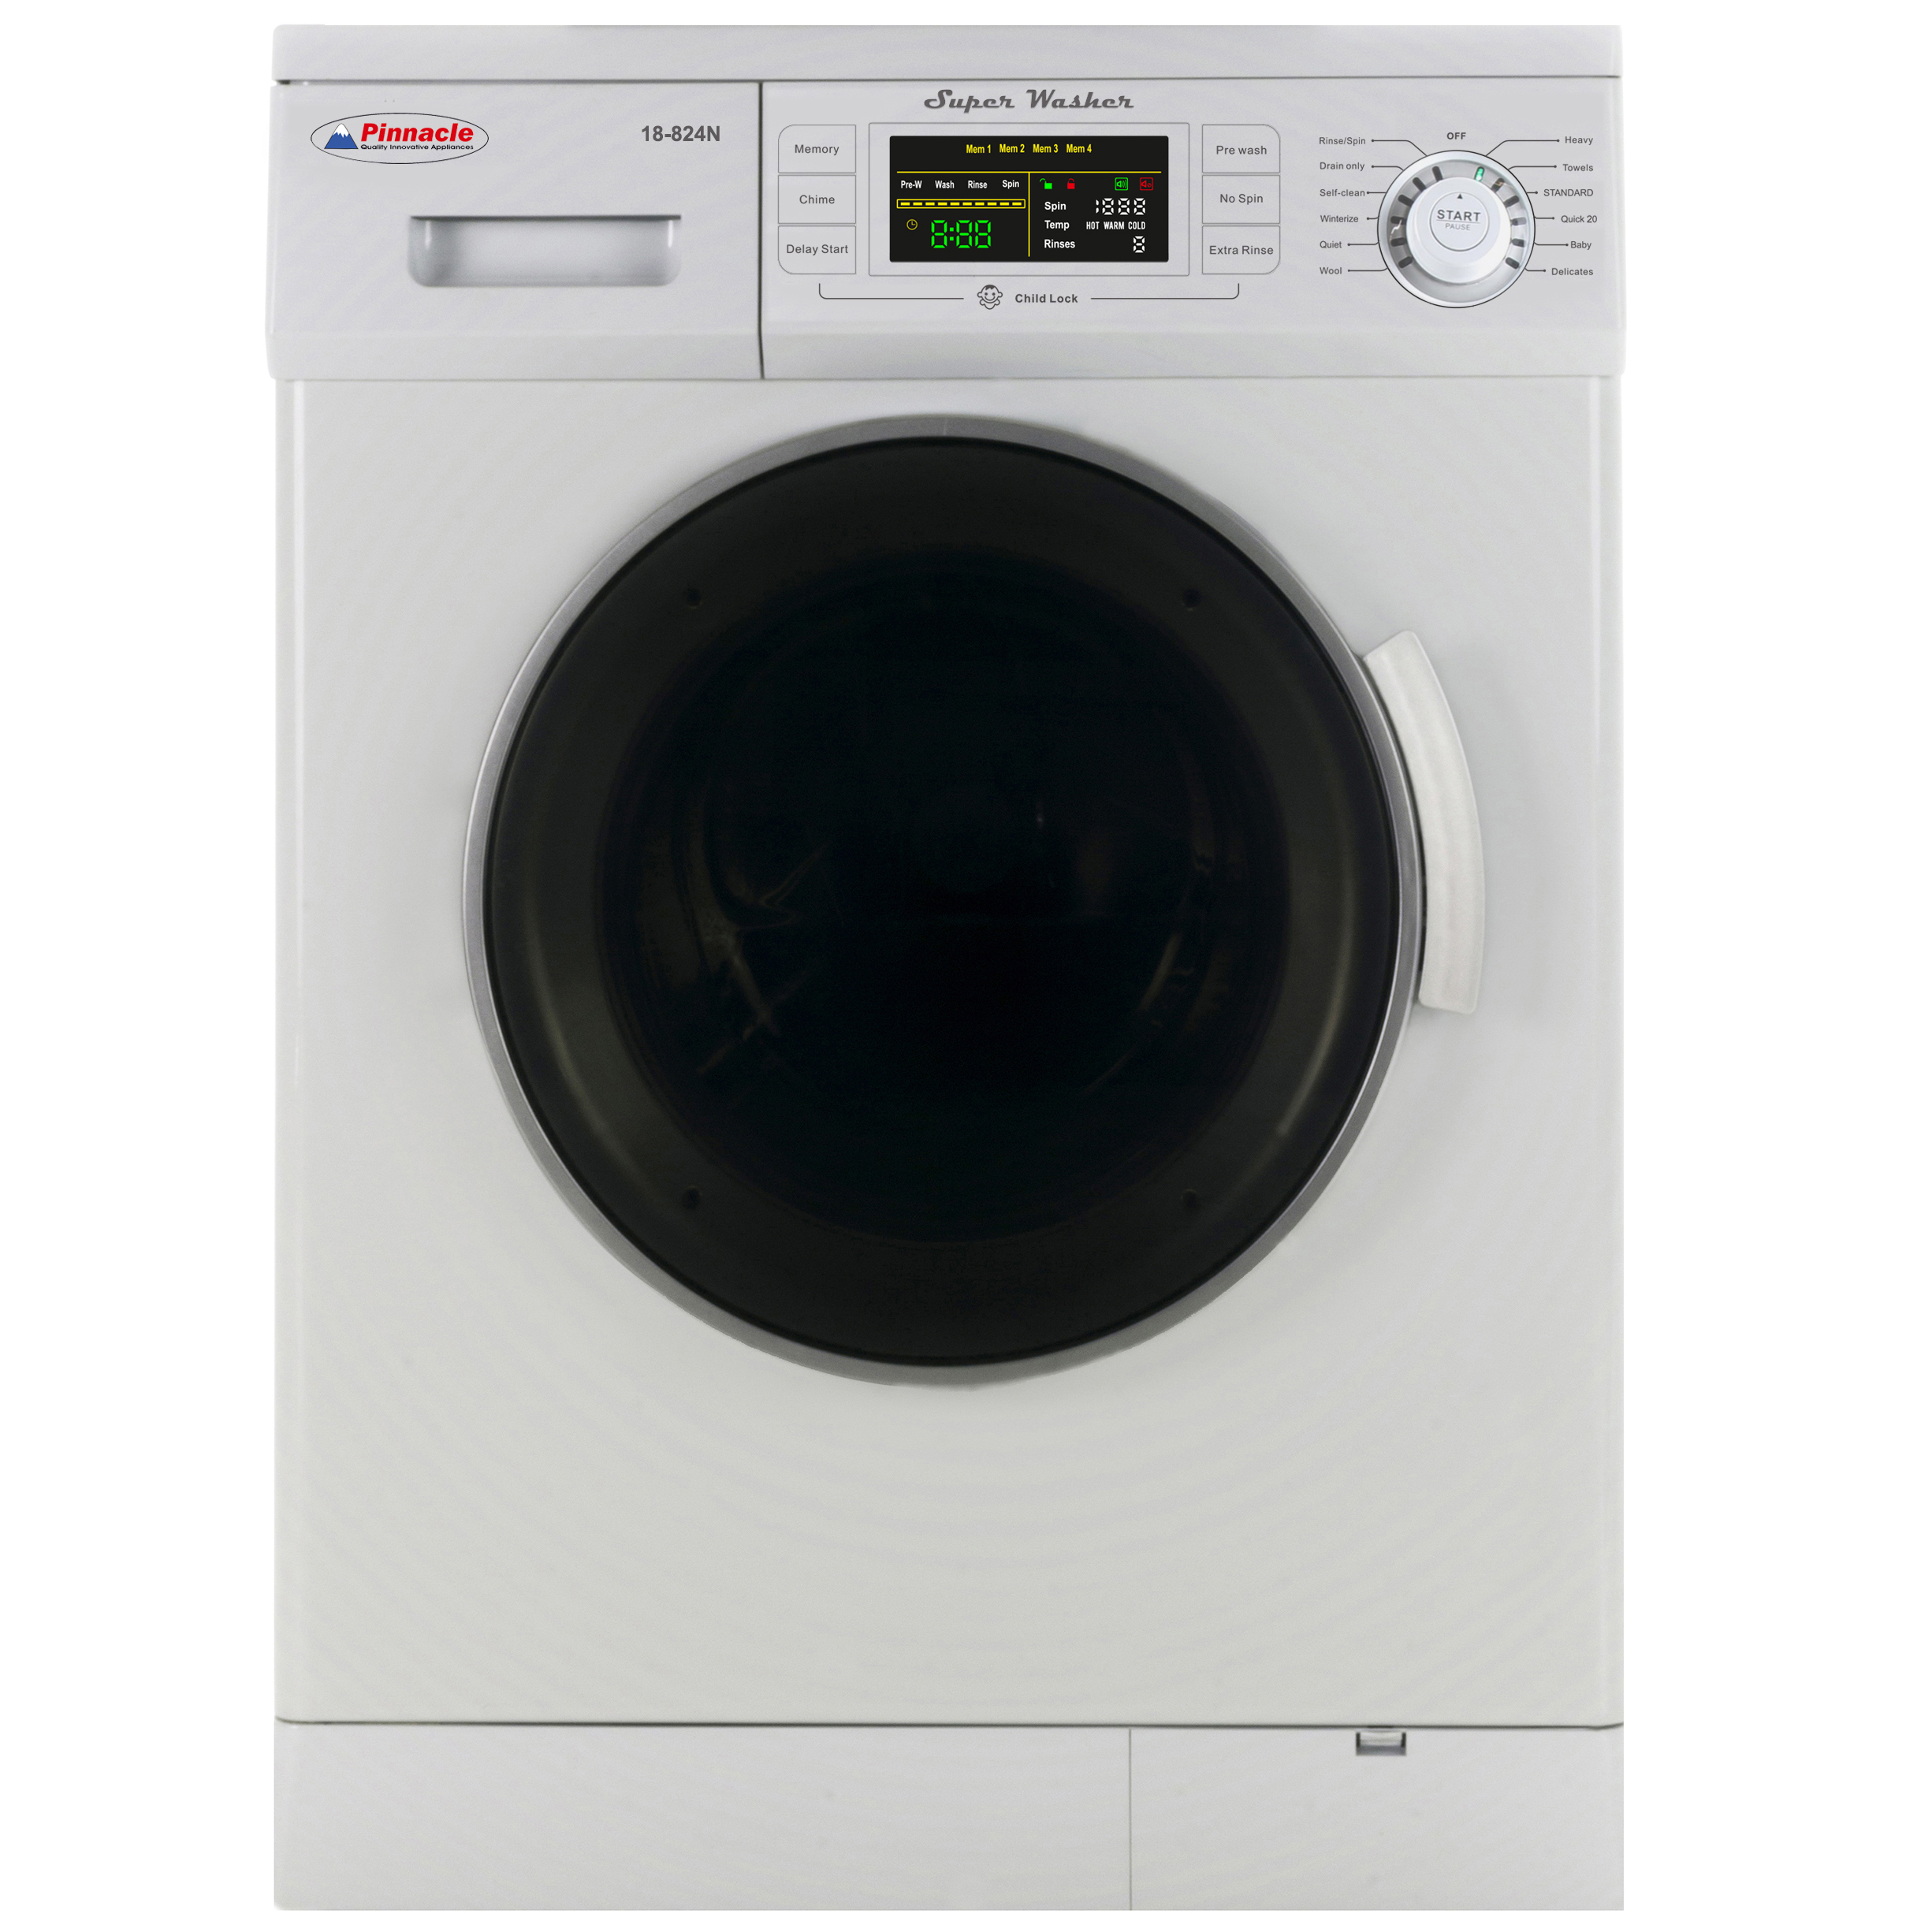 Super Washer 18-824N